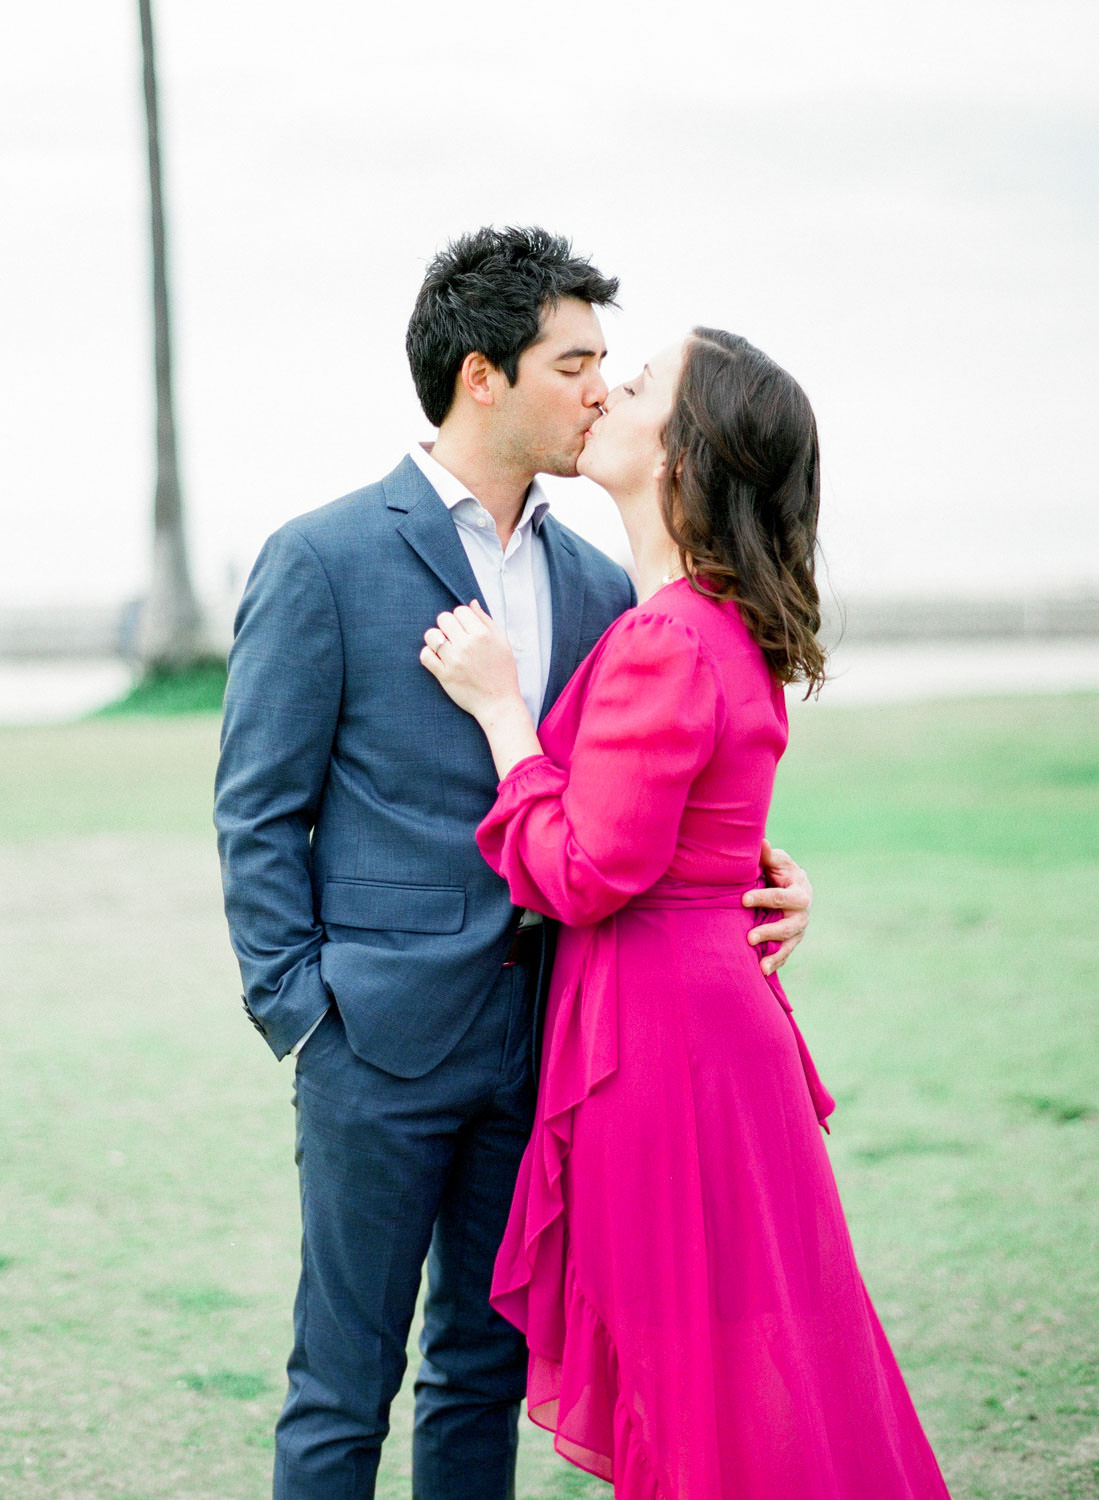 San Diego film photography, La Jolla Shores Engagement Photos with a magenta dress and blue suit, Cavin Elizabeth Photography